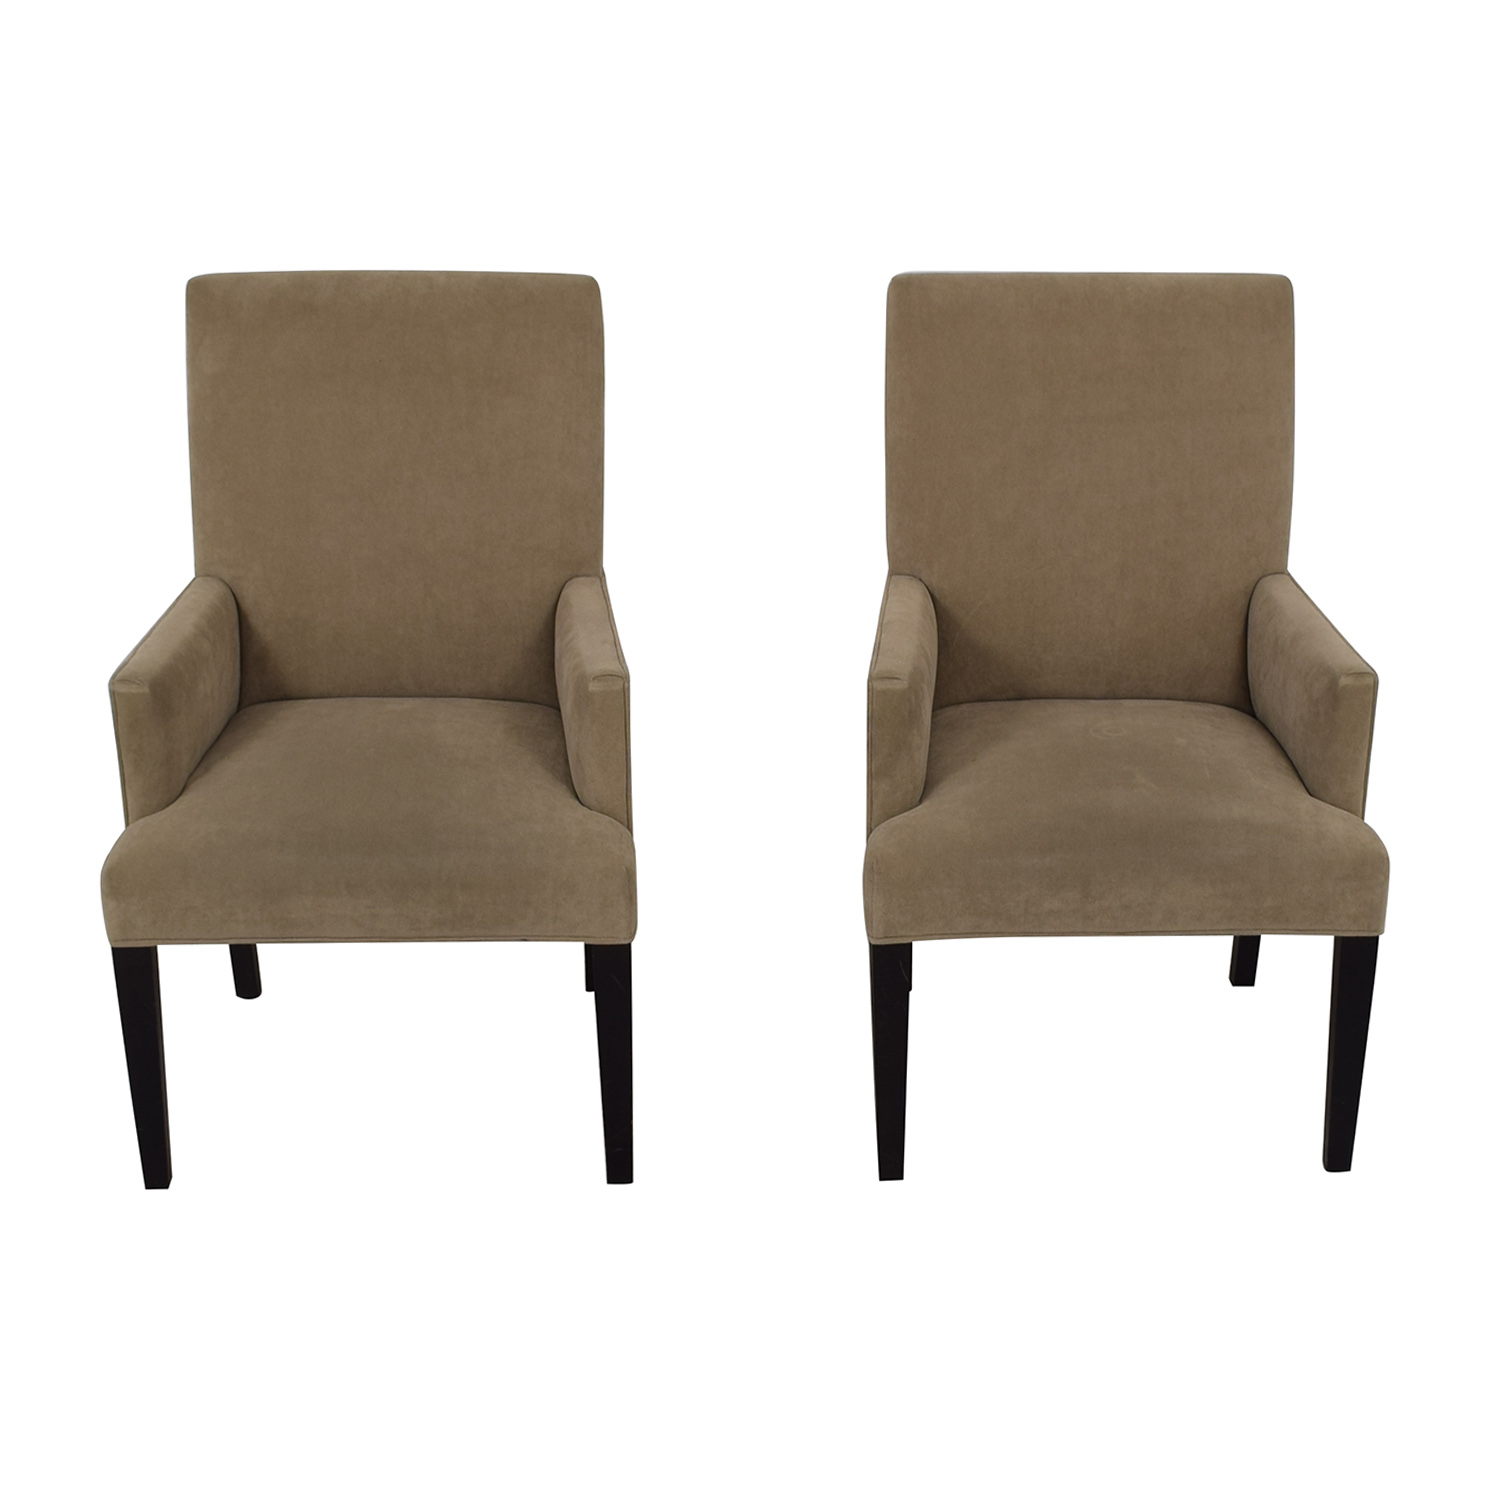 Crate & Barrel Crate & Barrel Tan Dining Chairs second hand